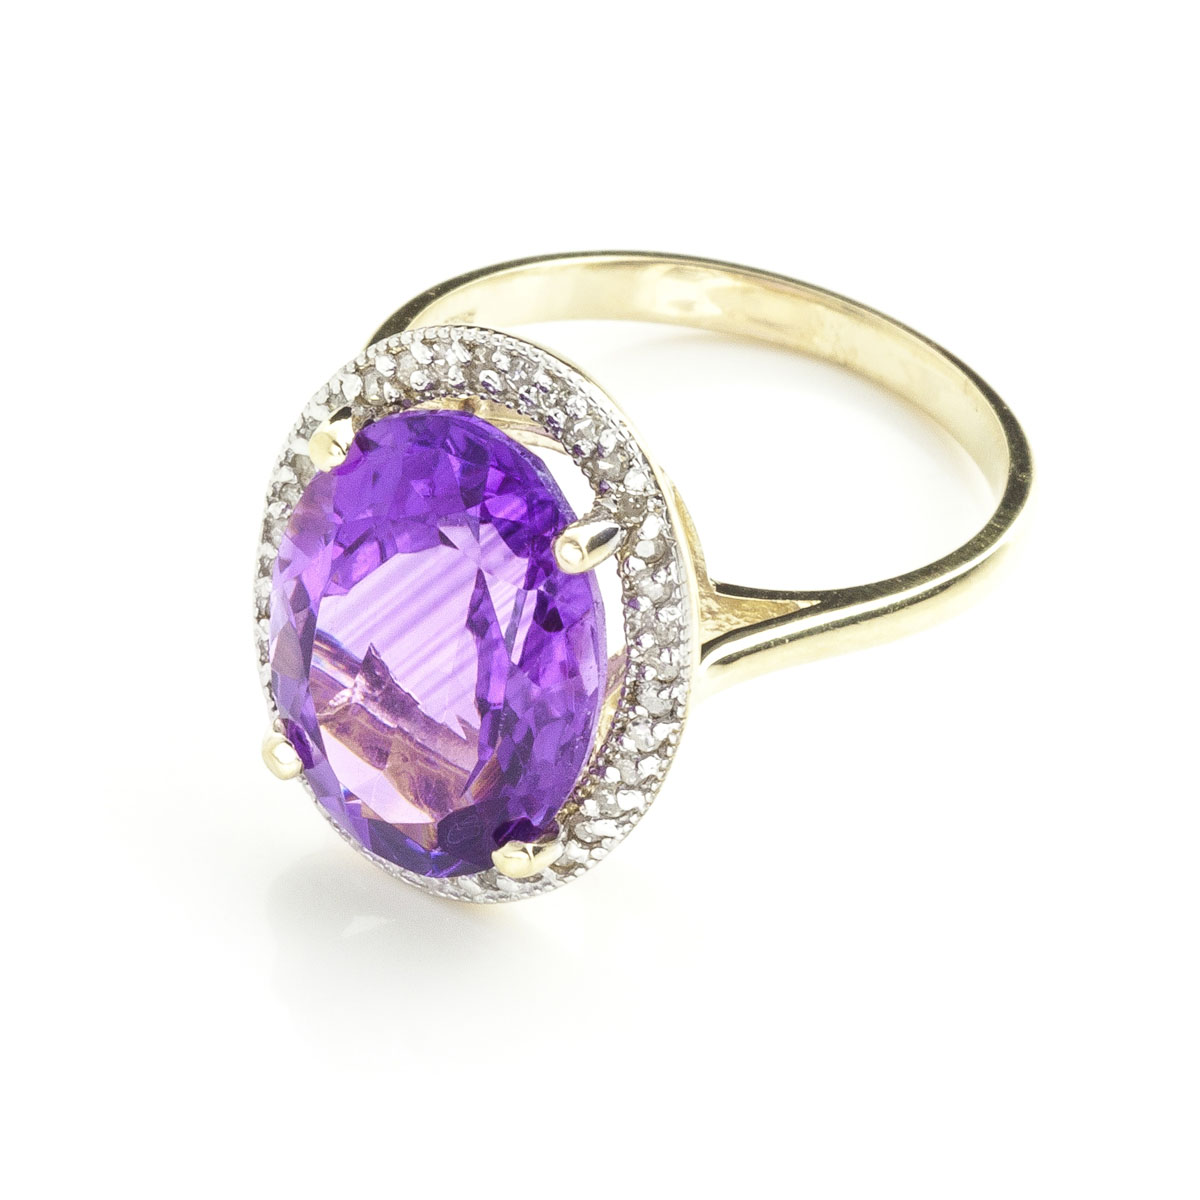 Amethyst Halo Ring 5.28 ctw in 9ct Gold